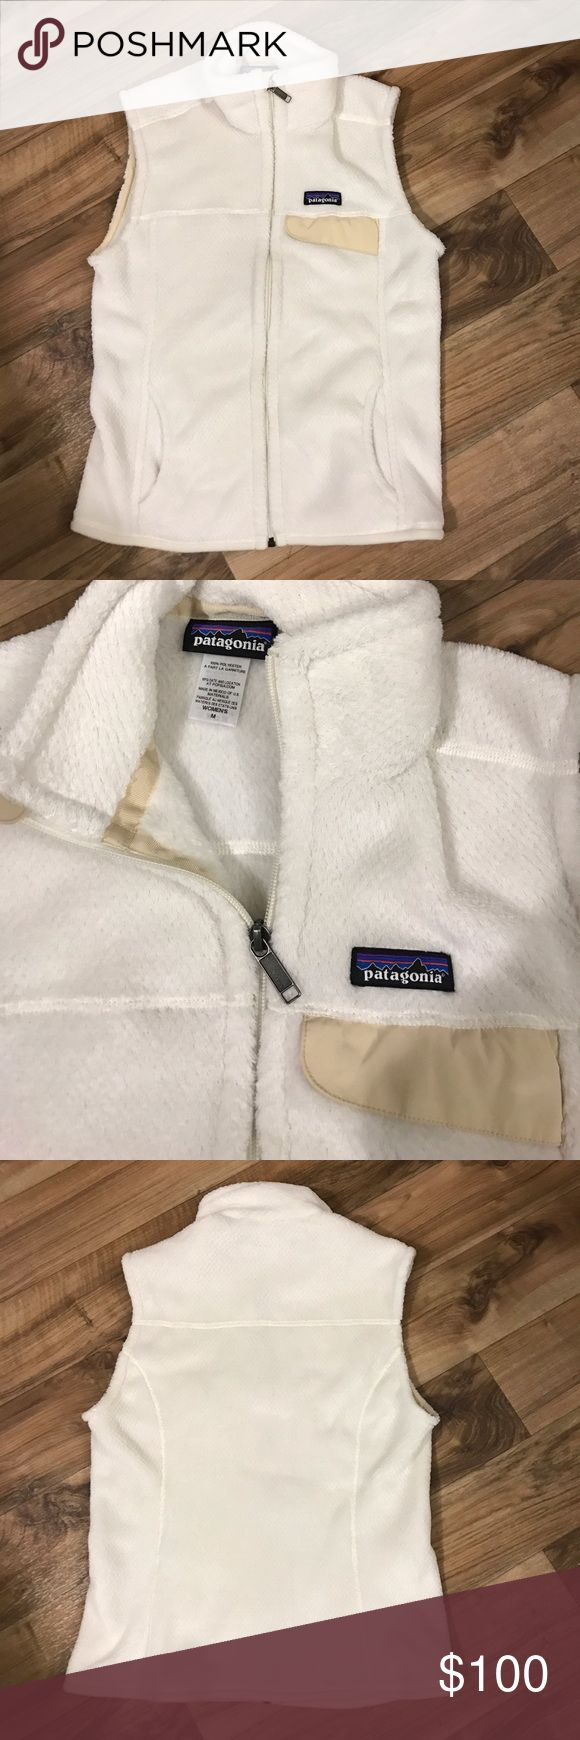 """Patagonia Fleece Vest Patagonia fleece vest in excellent condition. Color is """"raw linen"""", it's a cream color. Size medium. Patagonia Jackets & Coats Vests"""